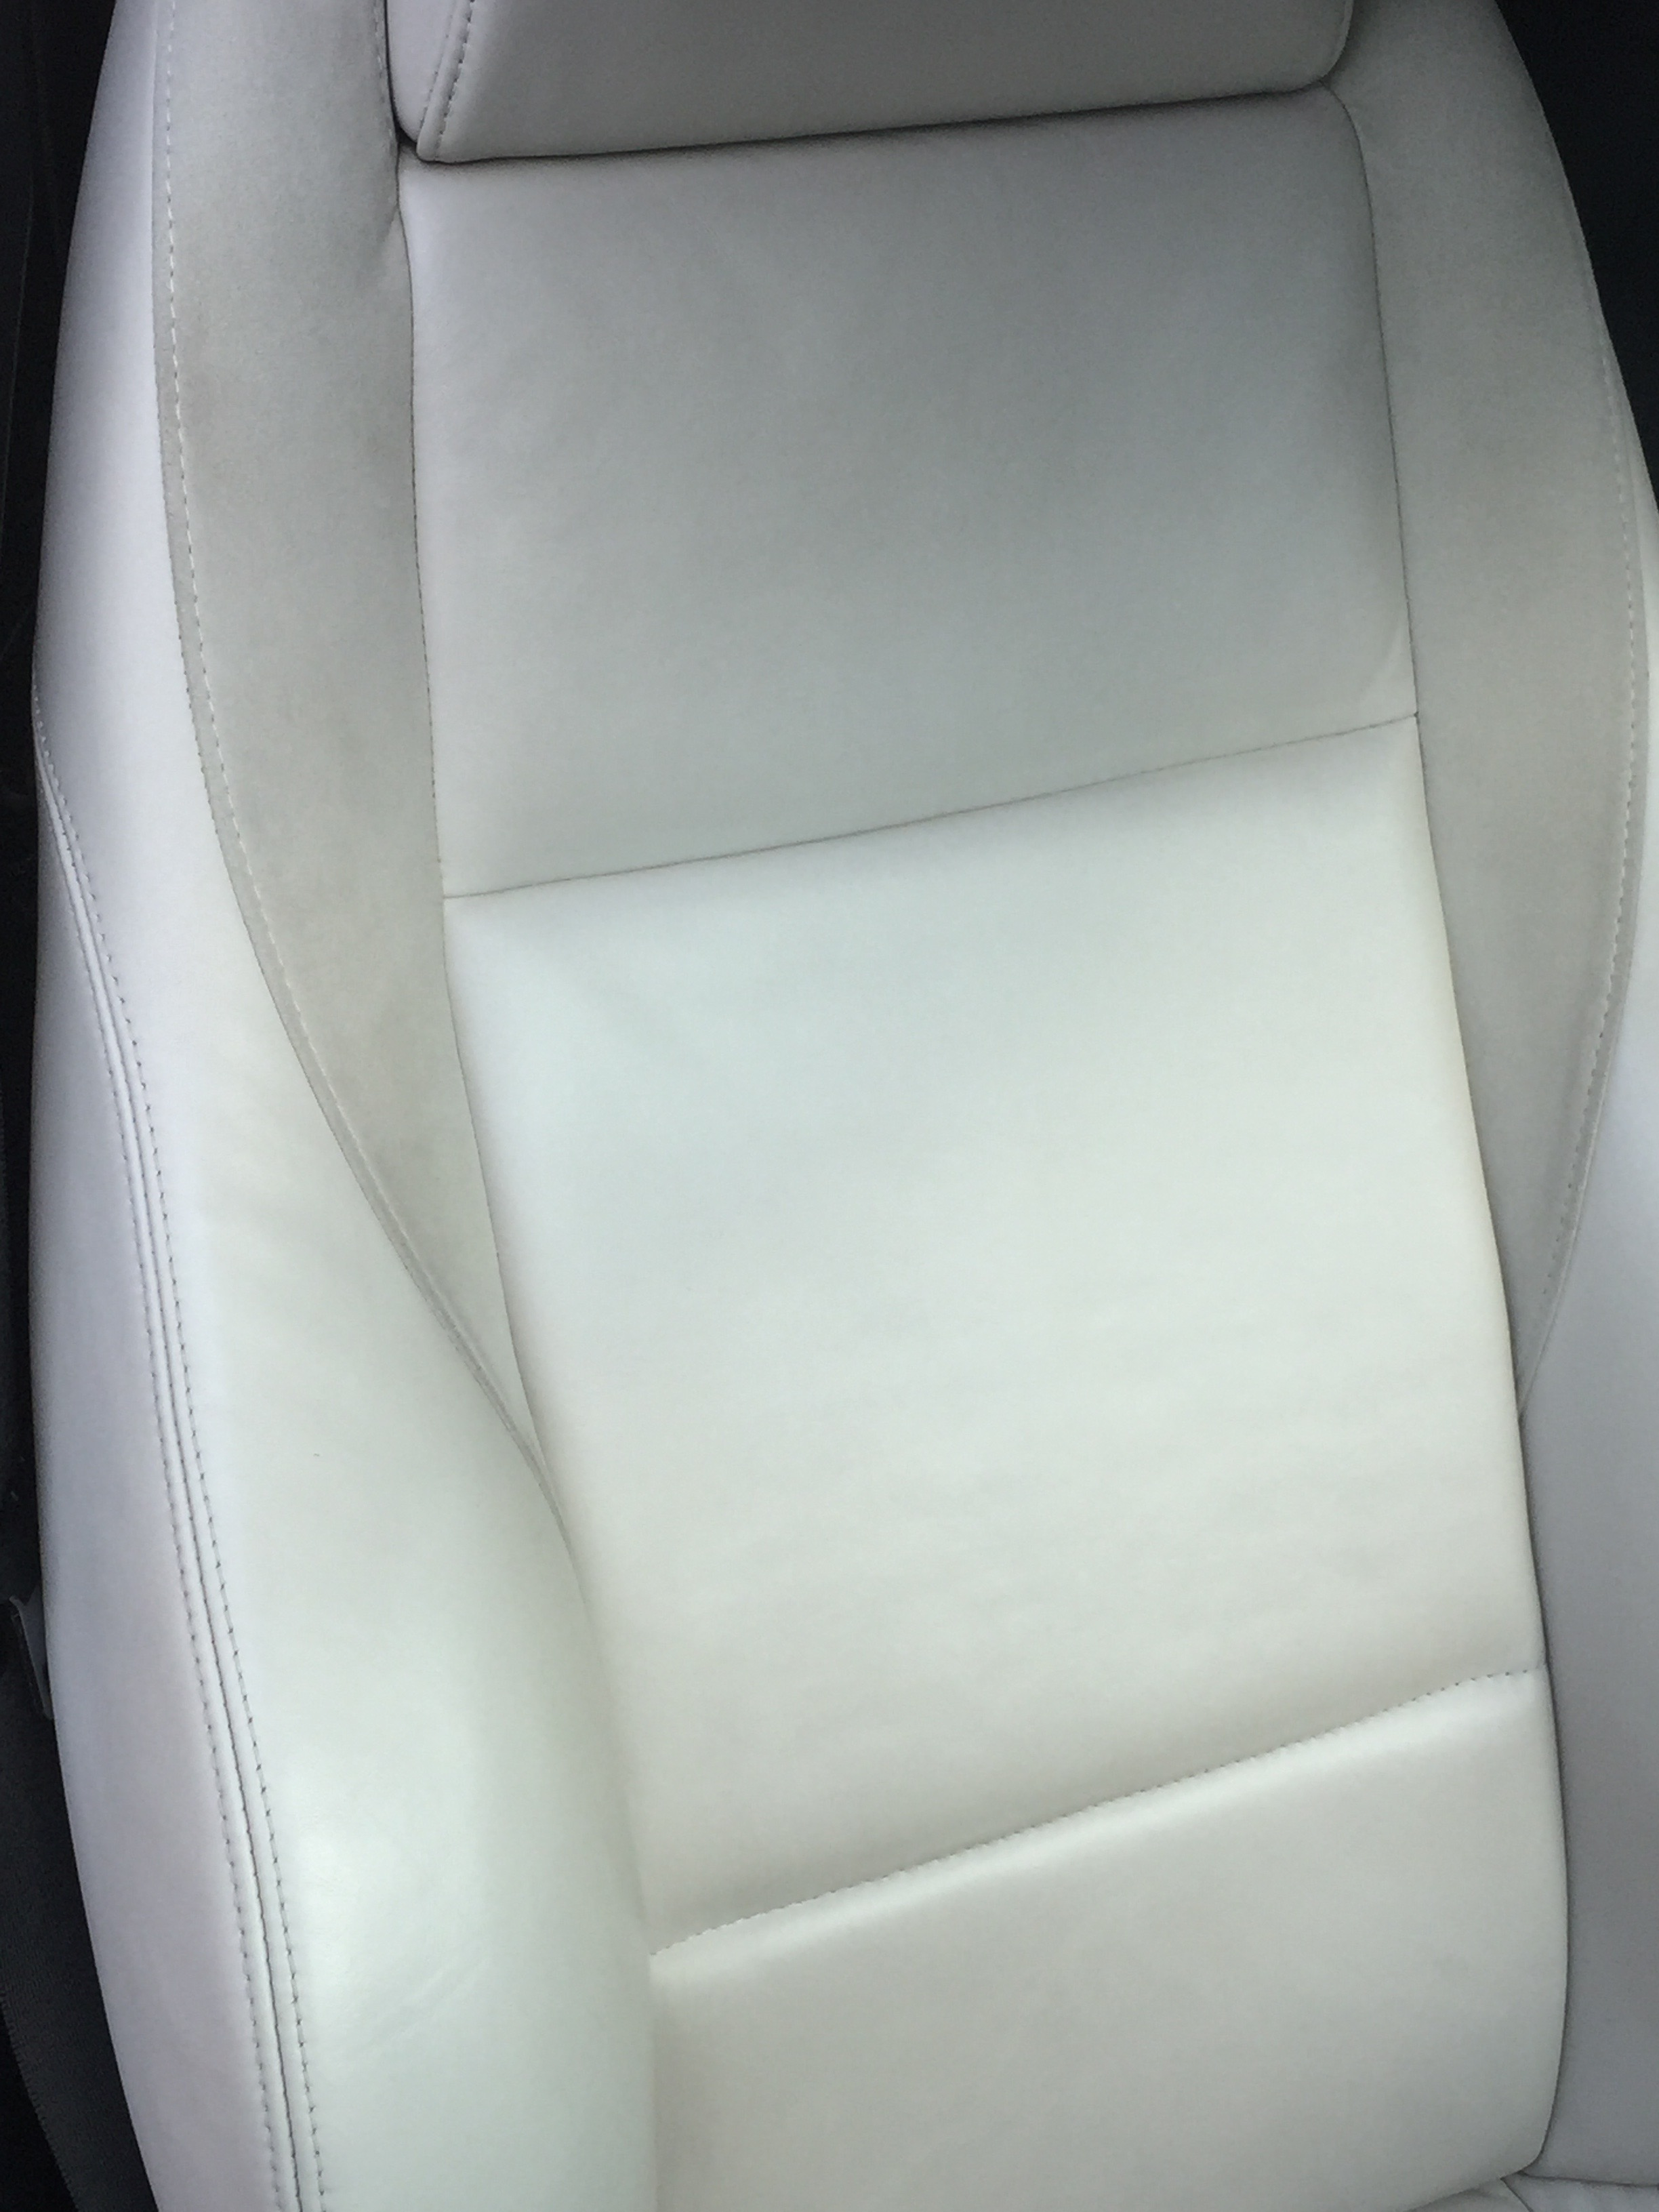 Bmw drivers seat cleaned and colour restored after 3str Sofa Colour